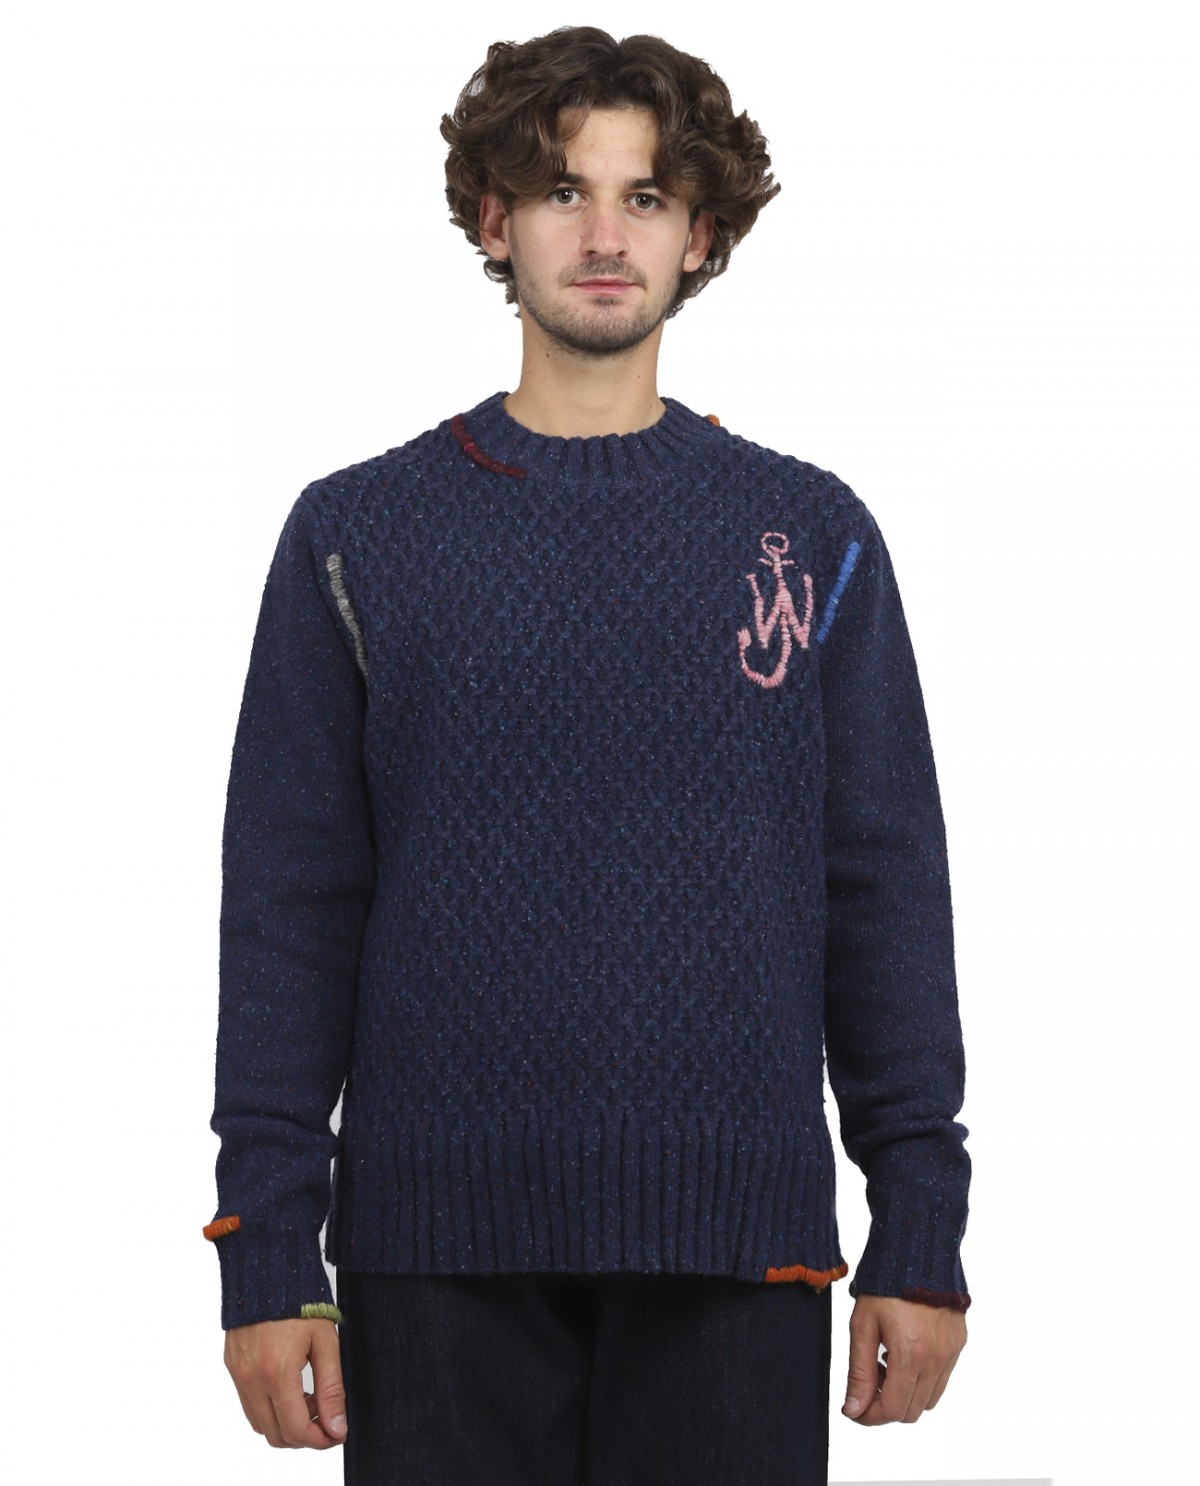 JW Anderson navy darning sweater